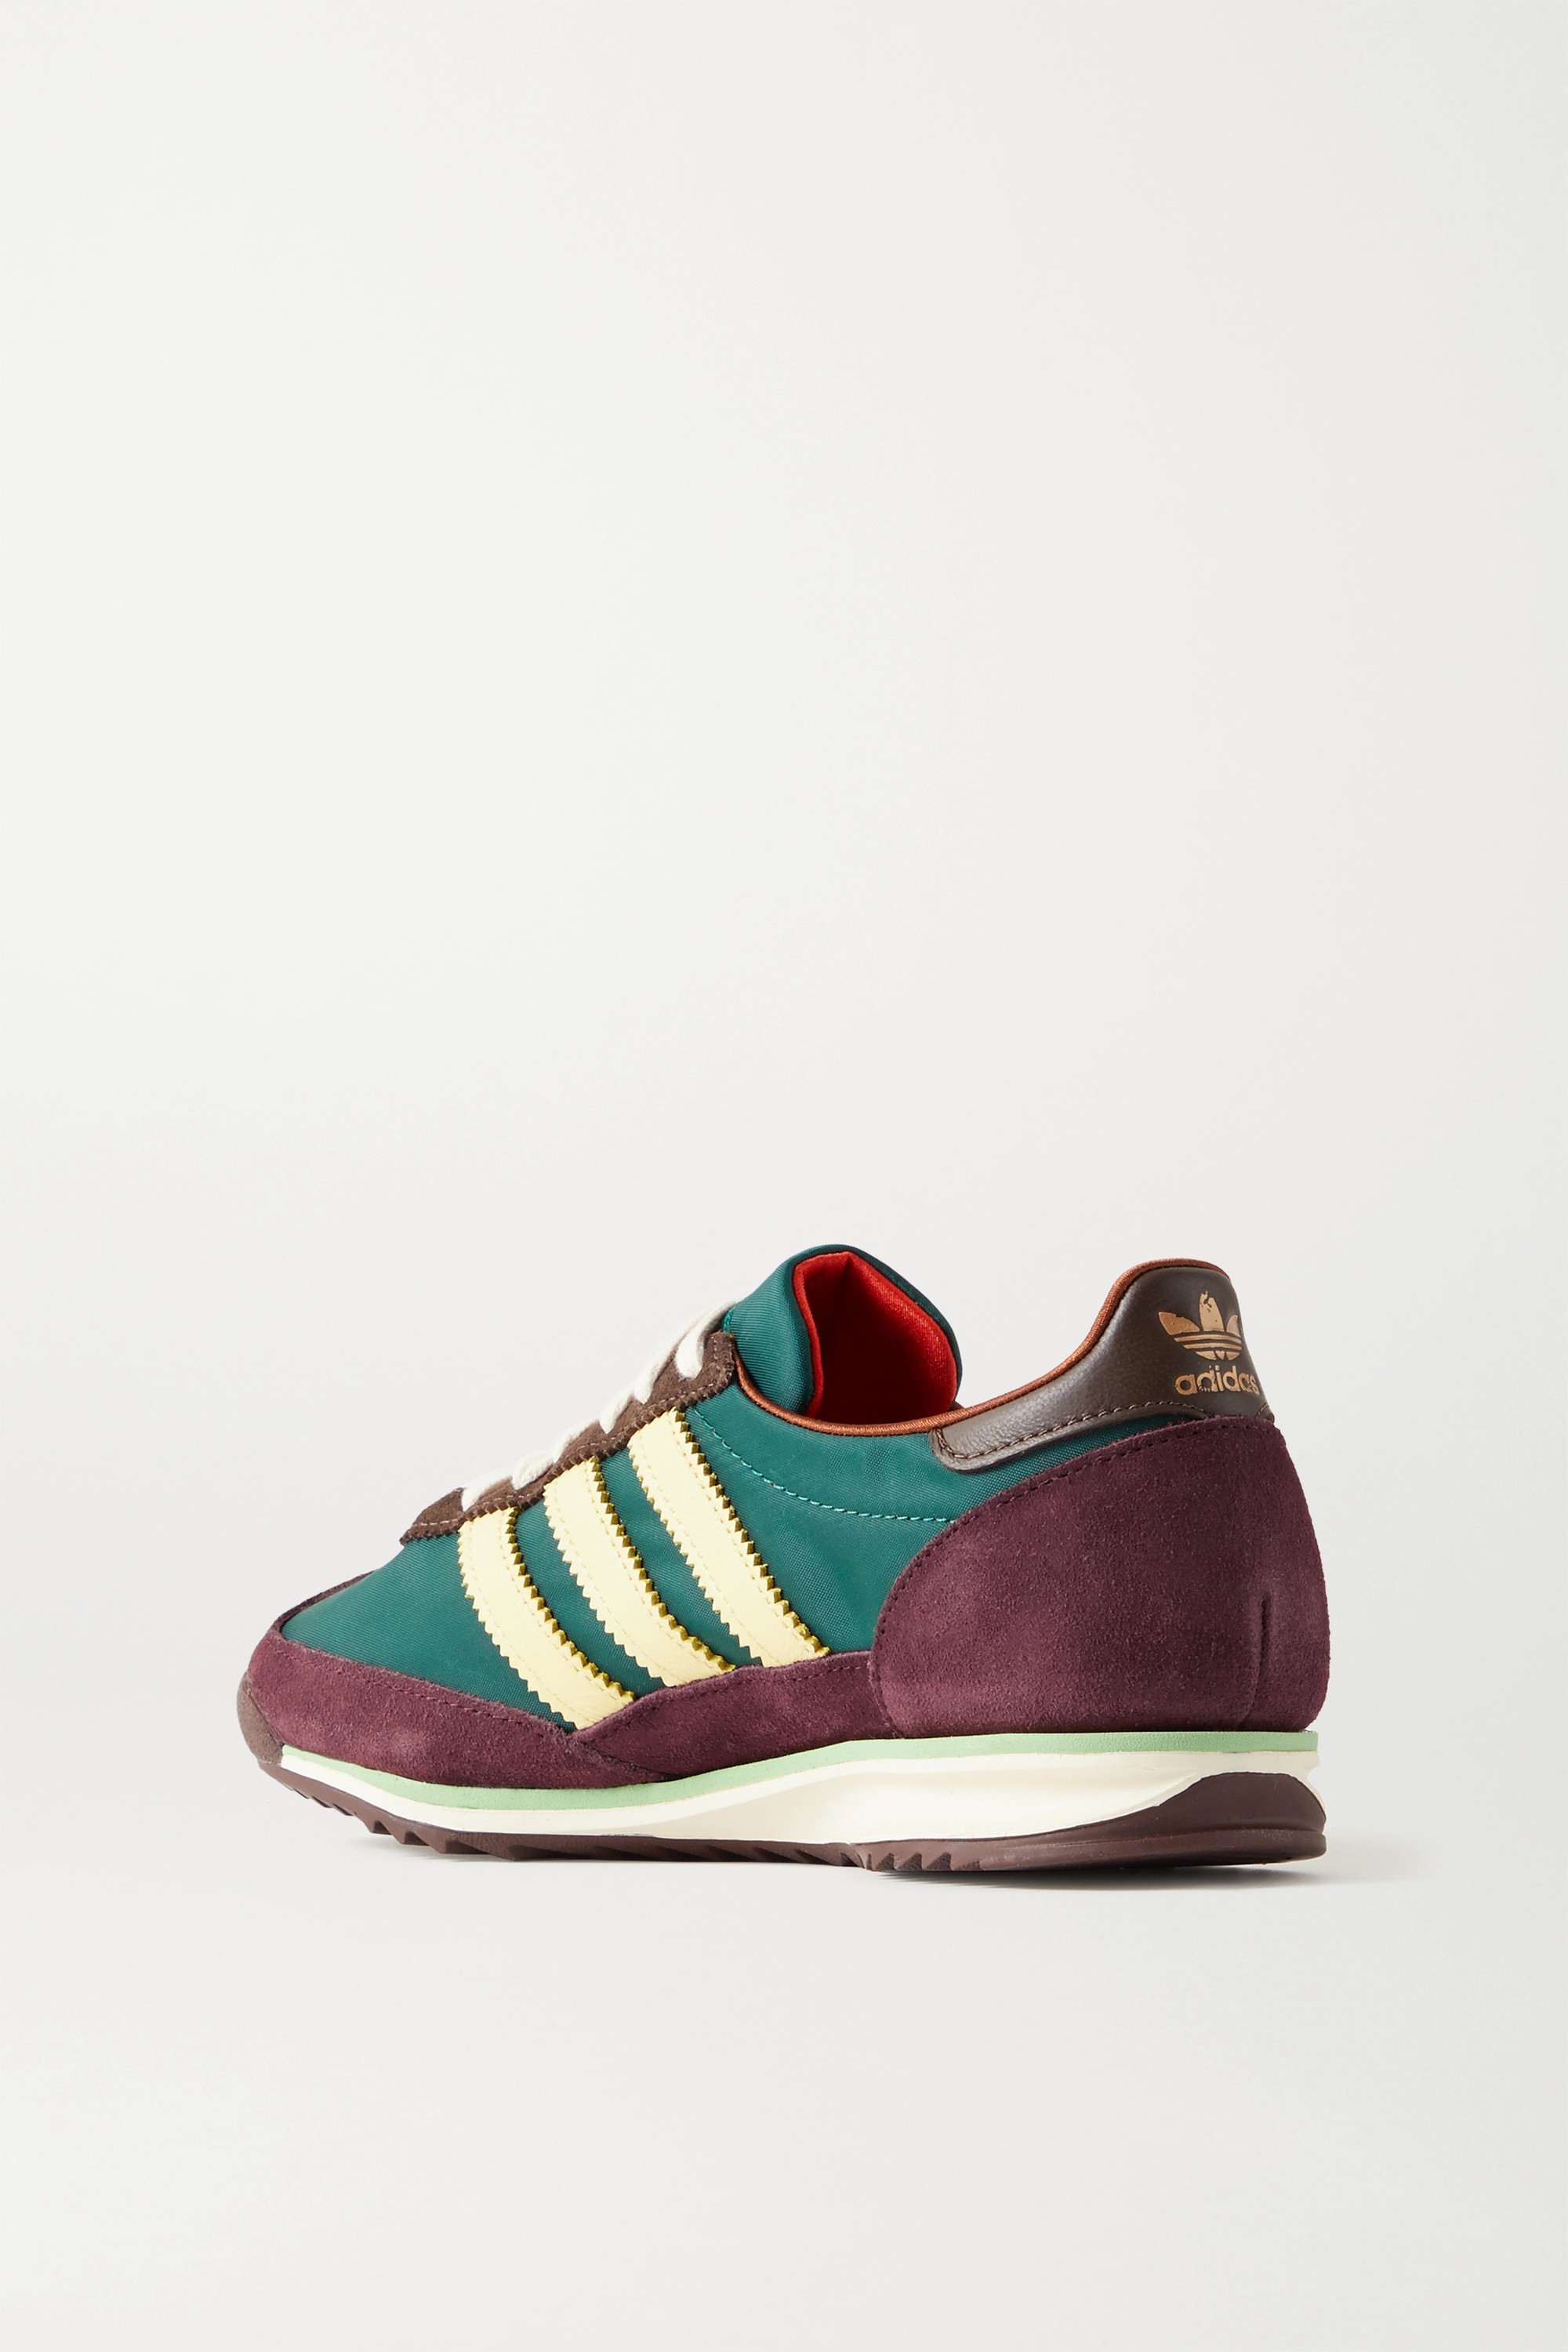 adidas Originals + Wales Bonner SL 72 shell, leather and suede sneakers